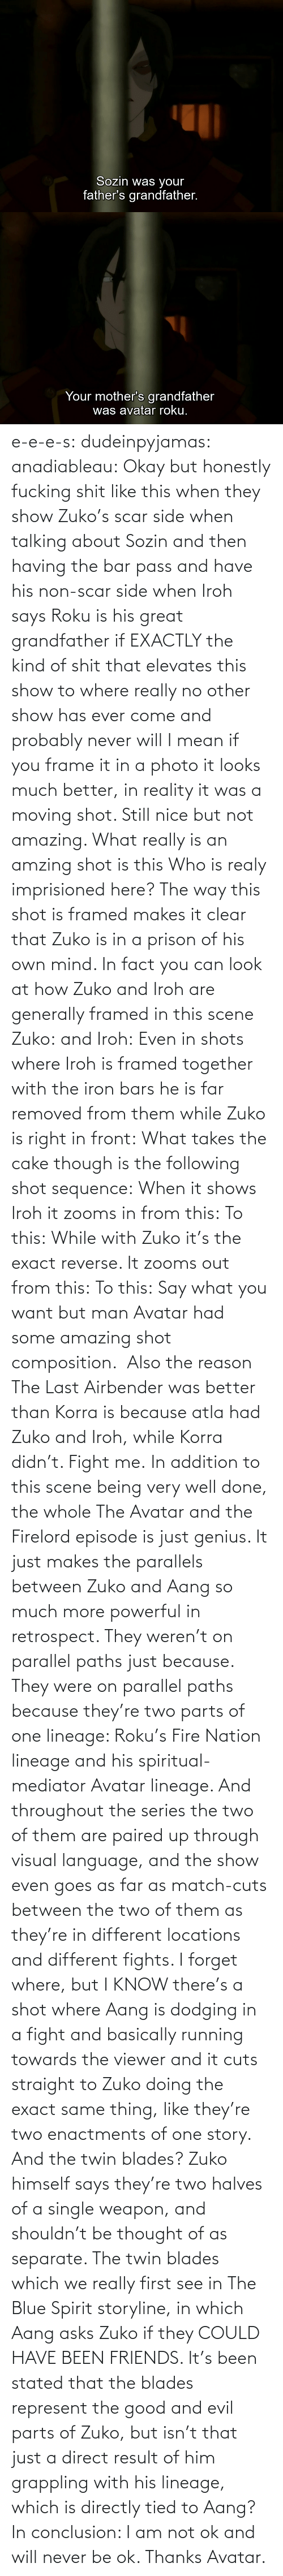 Prison: e-e-e-s: dudeinpyjamas:   anadiableau: Okay but honestly fucking shit like this when they show Zuko's scar side when talking about Sozin and then having the bar pass and have his non-scar side when Iroh says Roku is his great grandfather if EXACTLY the kind of shit that elevates this show to where really no other show has ever come and probably never will I mean if you frame it in a photo it looks much better, in reality it was a moving shot. Still nice but not amazing. What really is an amzing shot is this Who is realy imprisioned here? The way this shot is framed makes it clear that Zuko is in a prison of his own mind. In fact you can look at how Zuko and Iroh are generally framed in this scene Zuko: and Iroh: Even in shots where Iroh is framed together with the iron bars he is far removed from them while Zuko is right in front:  What takes the cake though is the following shot sequence: When it shows Iroh it zooms in from this: To this: While with Zuko it's the exact reverse. It zooms out from this: To this: Say what you want but man Avatar had some amazing shot composition.   Also the reason The Last Airbender was better than Korra is because atla had Zuko and Iroh, while Korra didn't. Fight me.    In addition to this scene being very well done, the whole The Avatar and the Firelord episode is just genius.  It just makes the parallels between Zuko and Aang so much more powerful in retrospect.  They weren't on parallel paths just because.  They were on parallel paths because they're two parts of one lineage: Roku's Fire Nation lineage and his spiritual-mediator Avatar lineage.  And throughout the series the two of them are paired up through visual language, and the show even goes as far as match-cuts between the two of them as they're in different locations and different fights.  I forget where, but I KNOW there's a shot where Aang is dodging in a fight and basically running towards the viewer and it cuts straight to Zuko doing the exact same thing, like they're two enactments of one story.   And the twin blades?  Zuko himself says they're two halves of a single weapon, and shouldn't be thought of as separate.  The twin blades which we really first see in The Blue Spirit storyline, in which Aang asks Zuko if they COULD HAVE BEEN FRIENDS.  It's been stated that the blades represent the good and evil parts of Zuko, but isn't that just a direct result of him grappling with his lineage, which is directly tied to Aang? In conclusion: I am not ok and will never be ok.  Thanks Avatar.